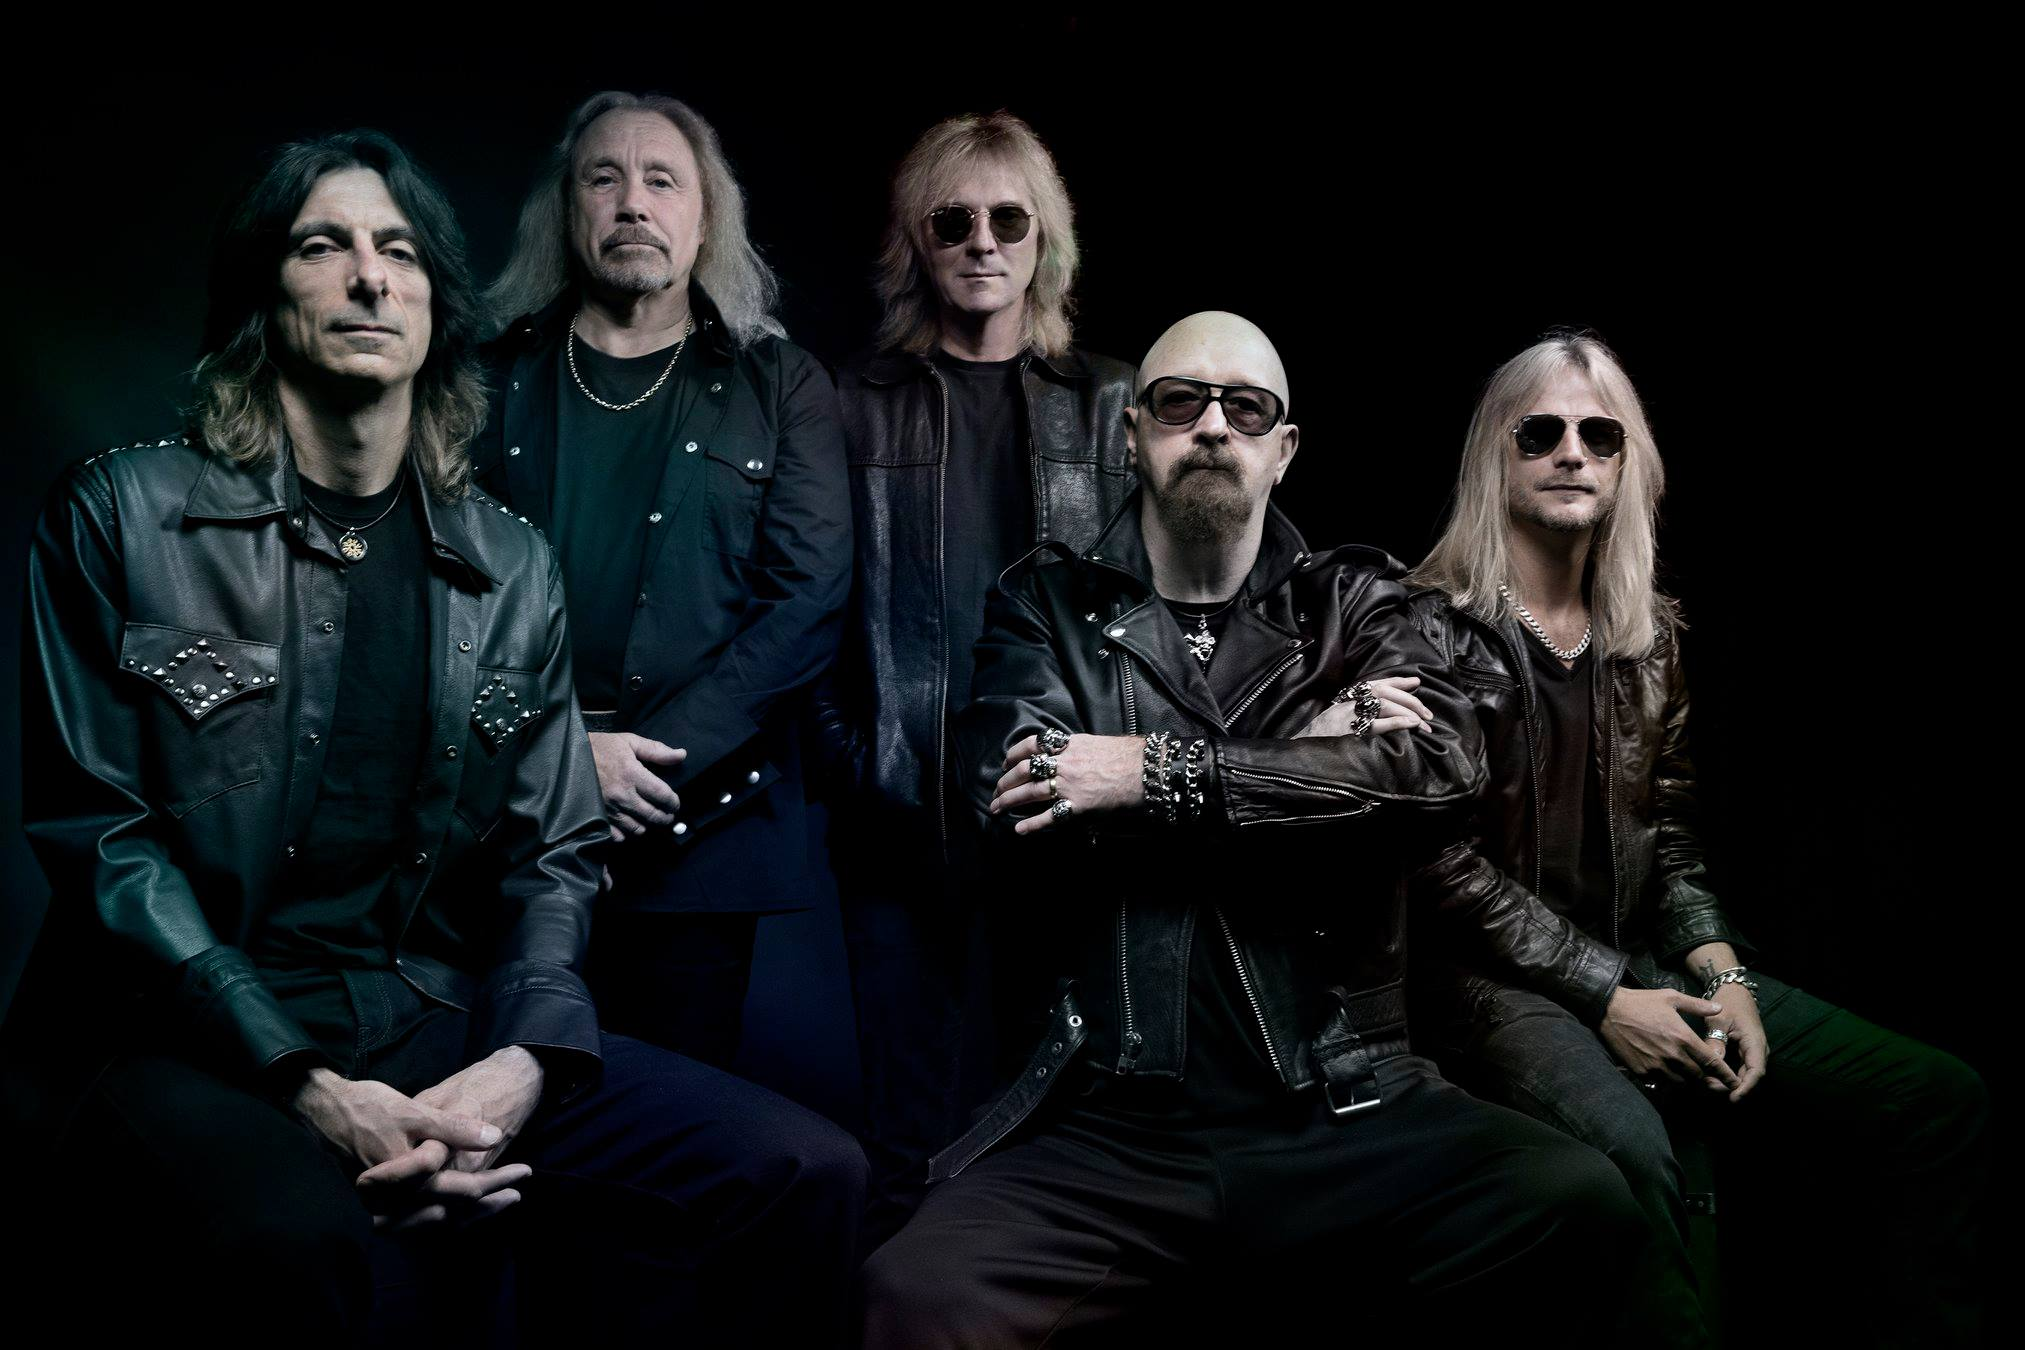 Nuevo video de Judas Priest